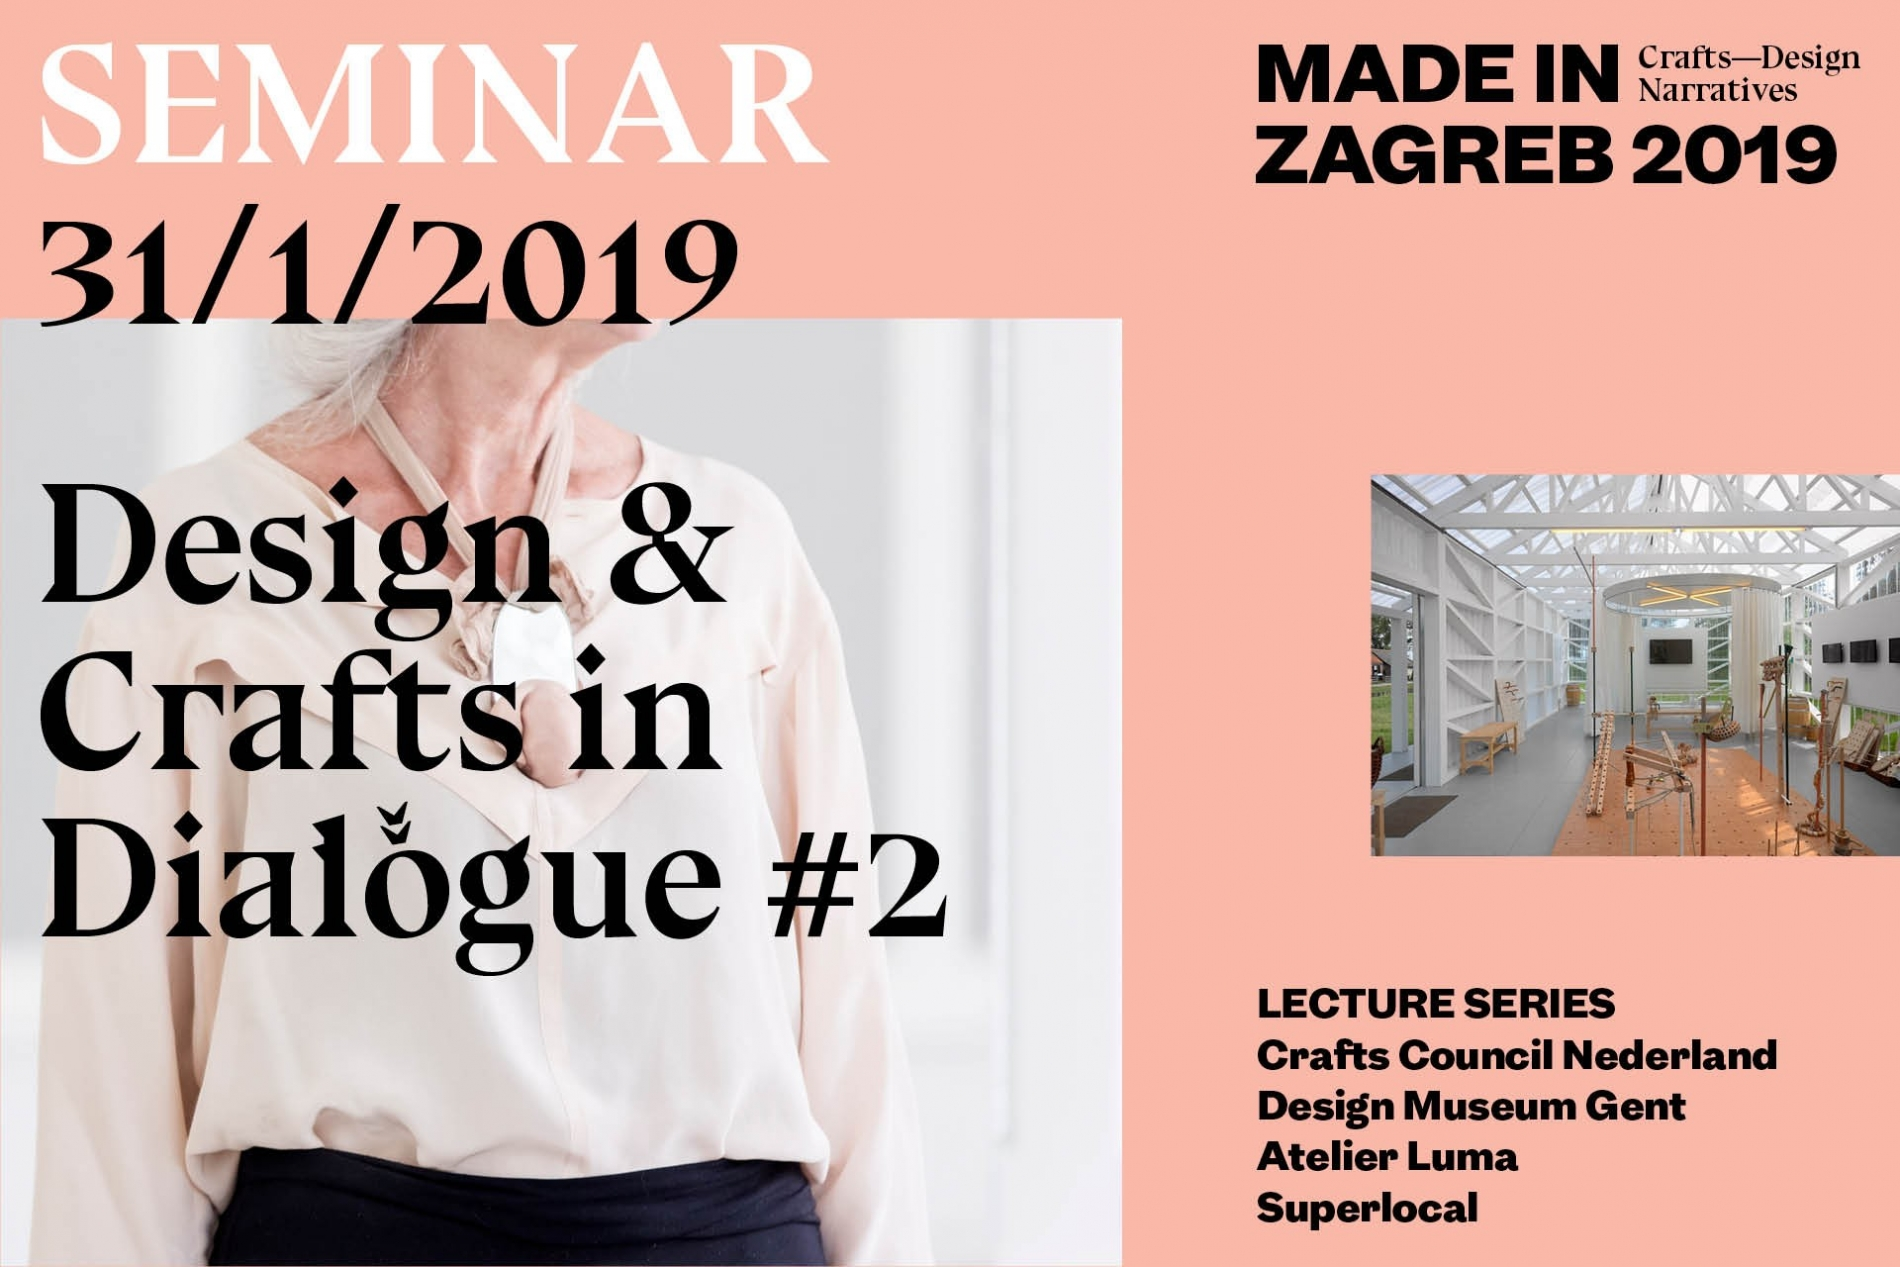 On design practice brings lectures by two young renowned designers and researchers henriette waal atelier luma nl fr will speak about the sustainable